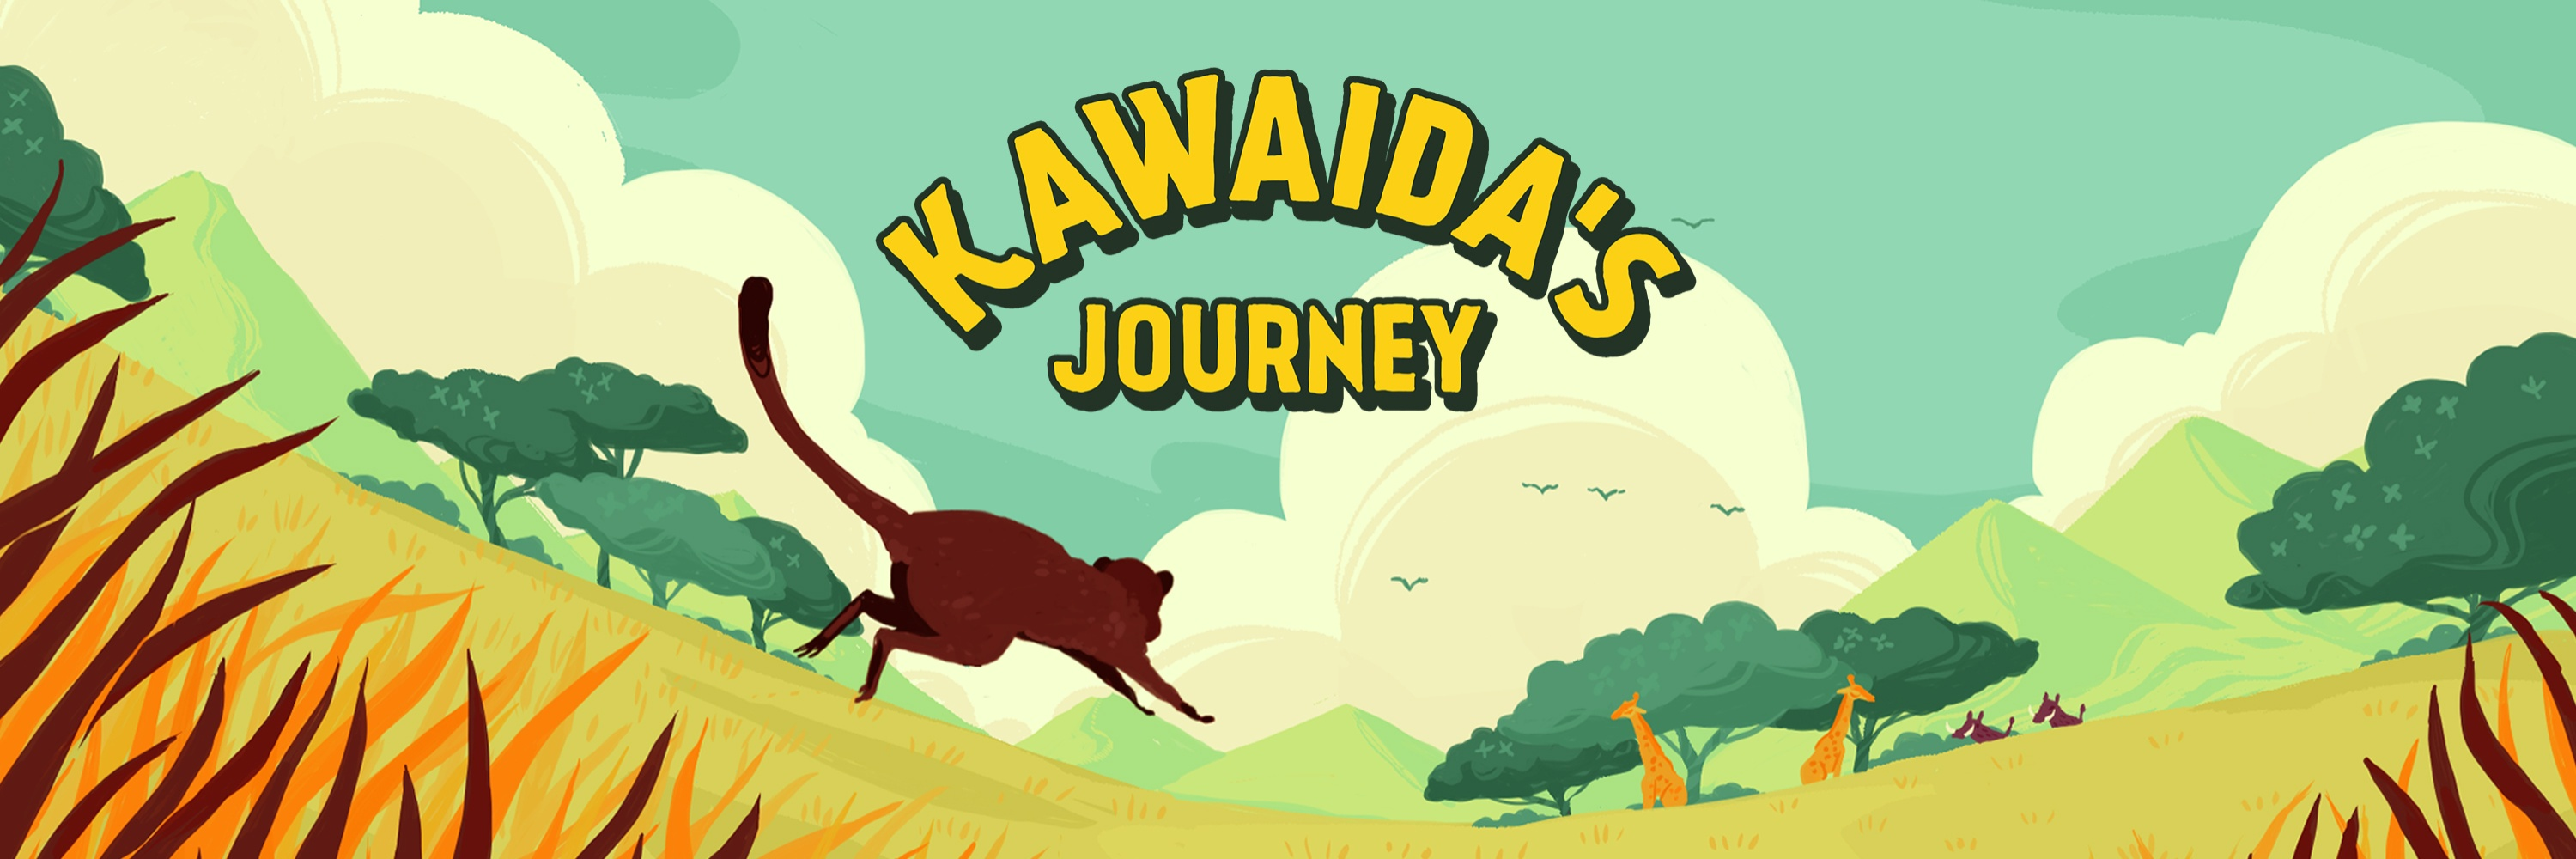 Kawaida's Journey Fan-Shop